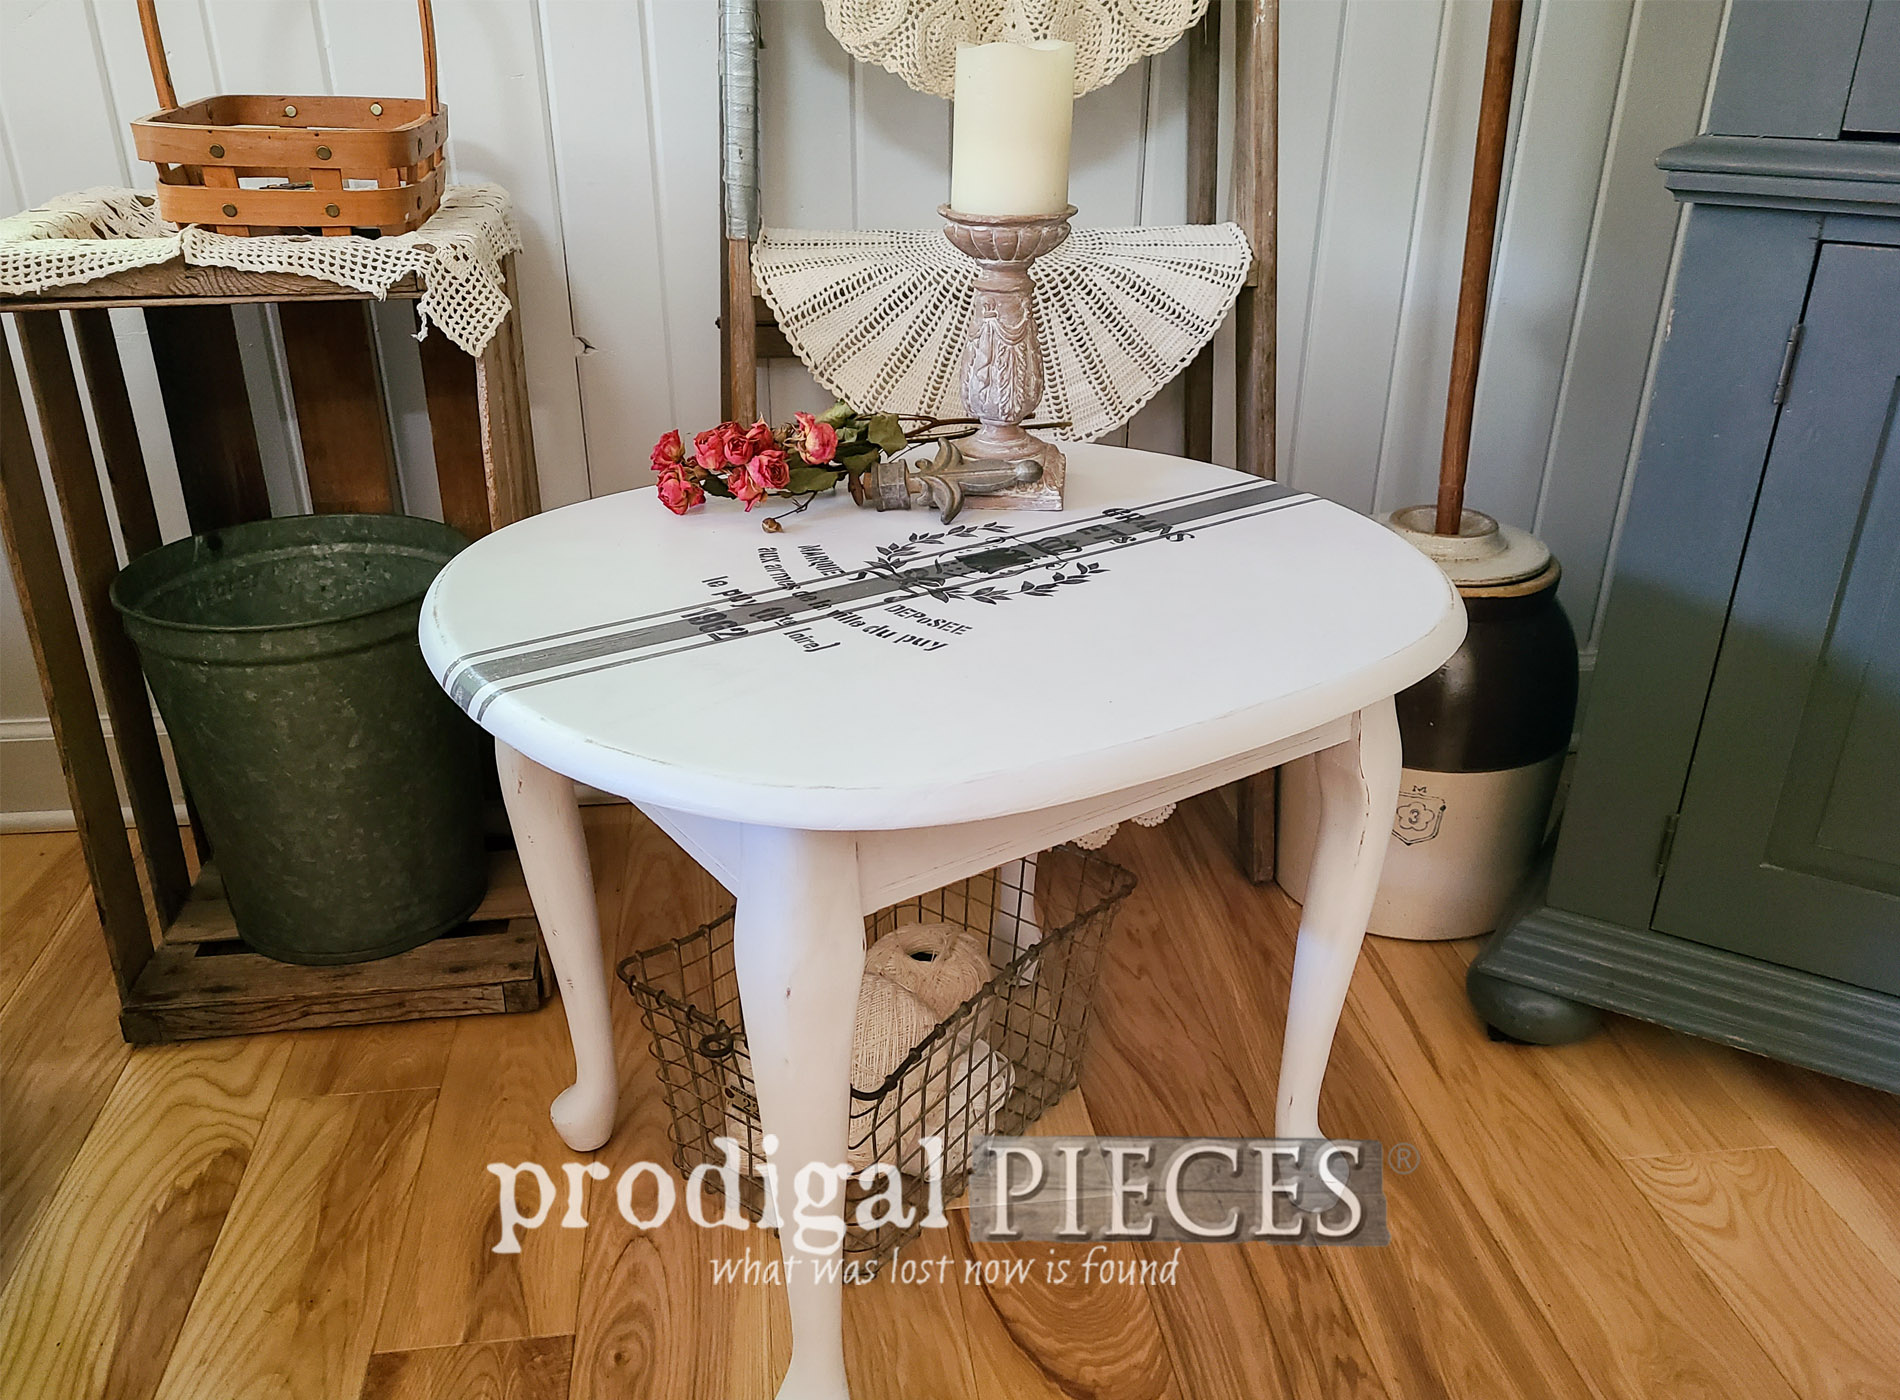 Featured Painted Side Table with Grain Sack Design by Larissa of Prodigal Pieces | prodigalpieces.com #prodigalpieces #furniture #farmhouse #diy #home #homedecor